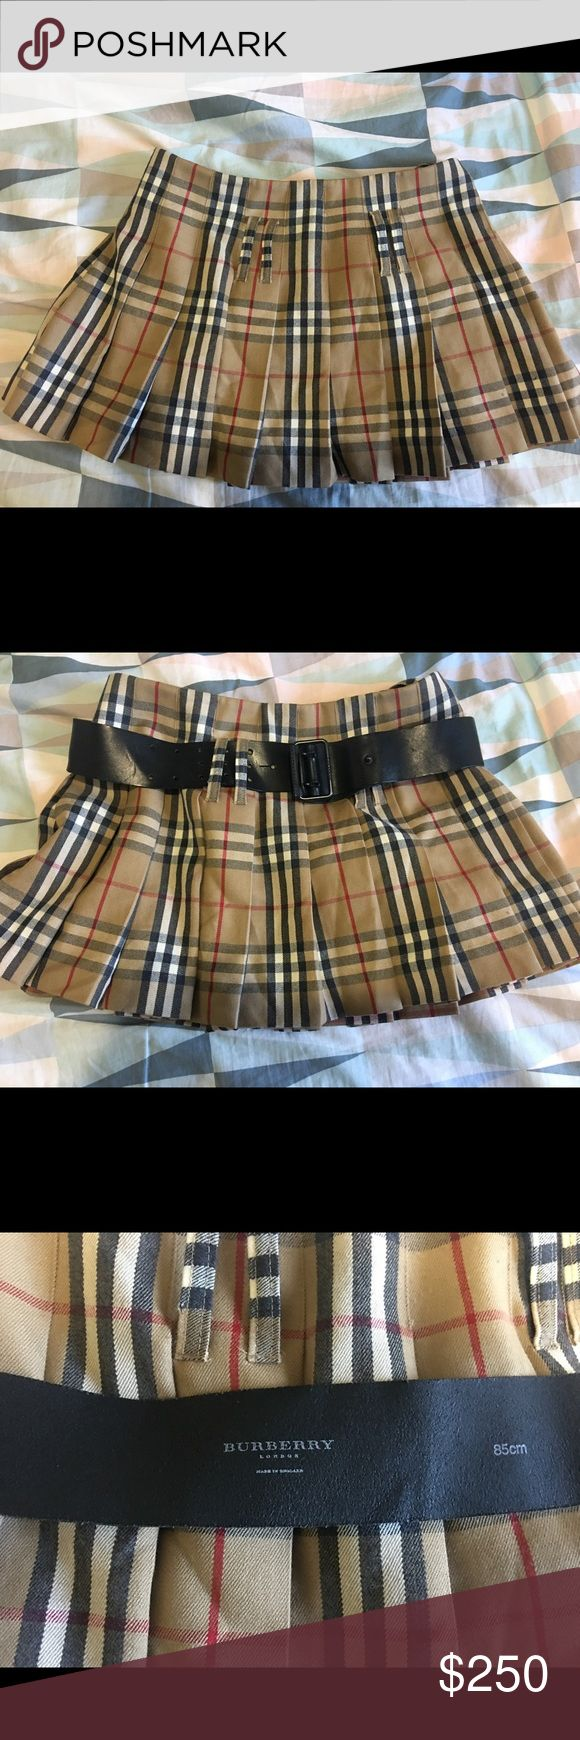 Burberry skirt US size 6 UK size 8 Like new, great condition Burberry Skirts Mini